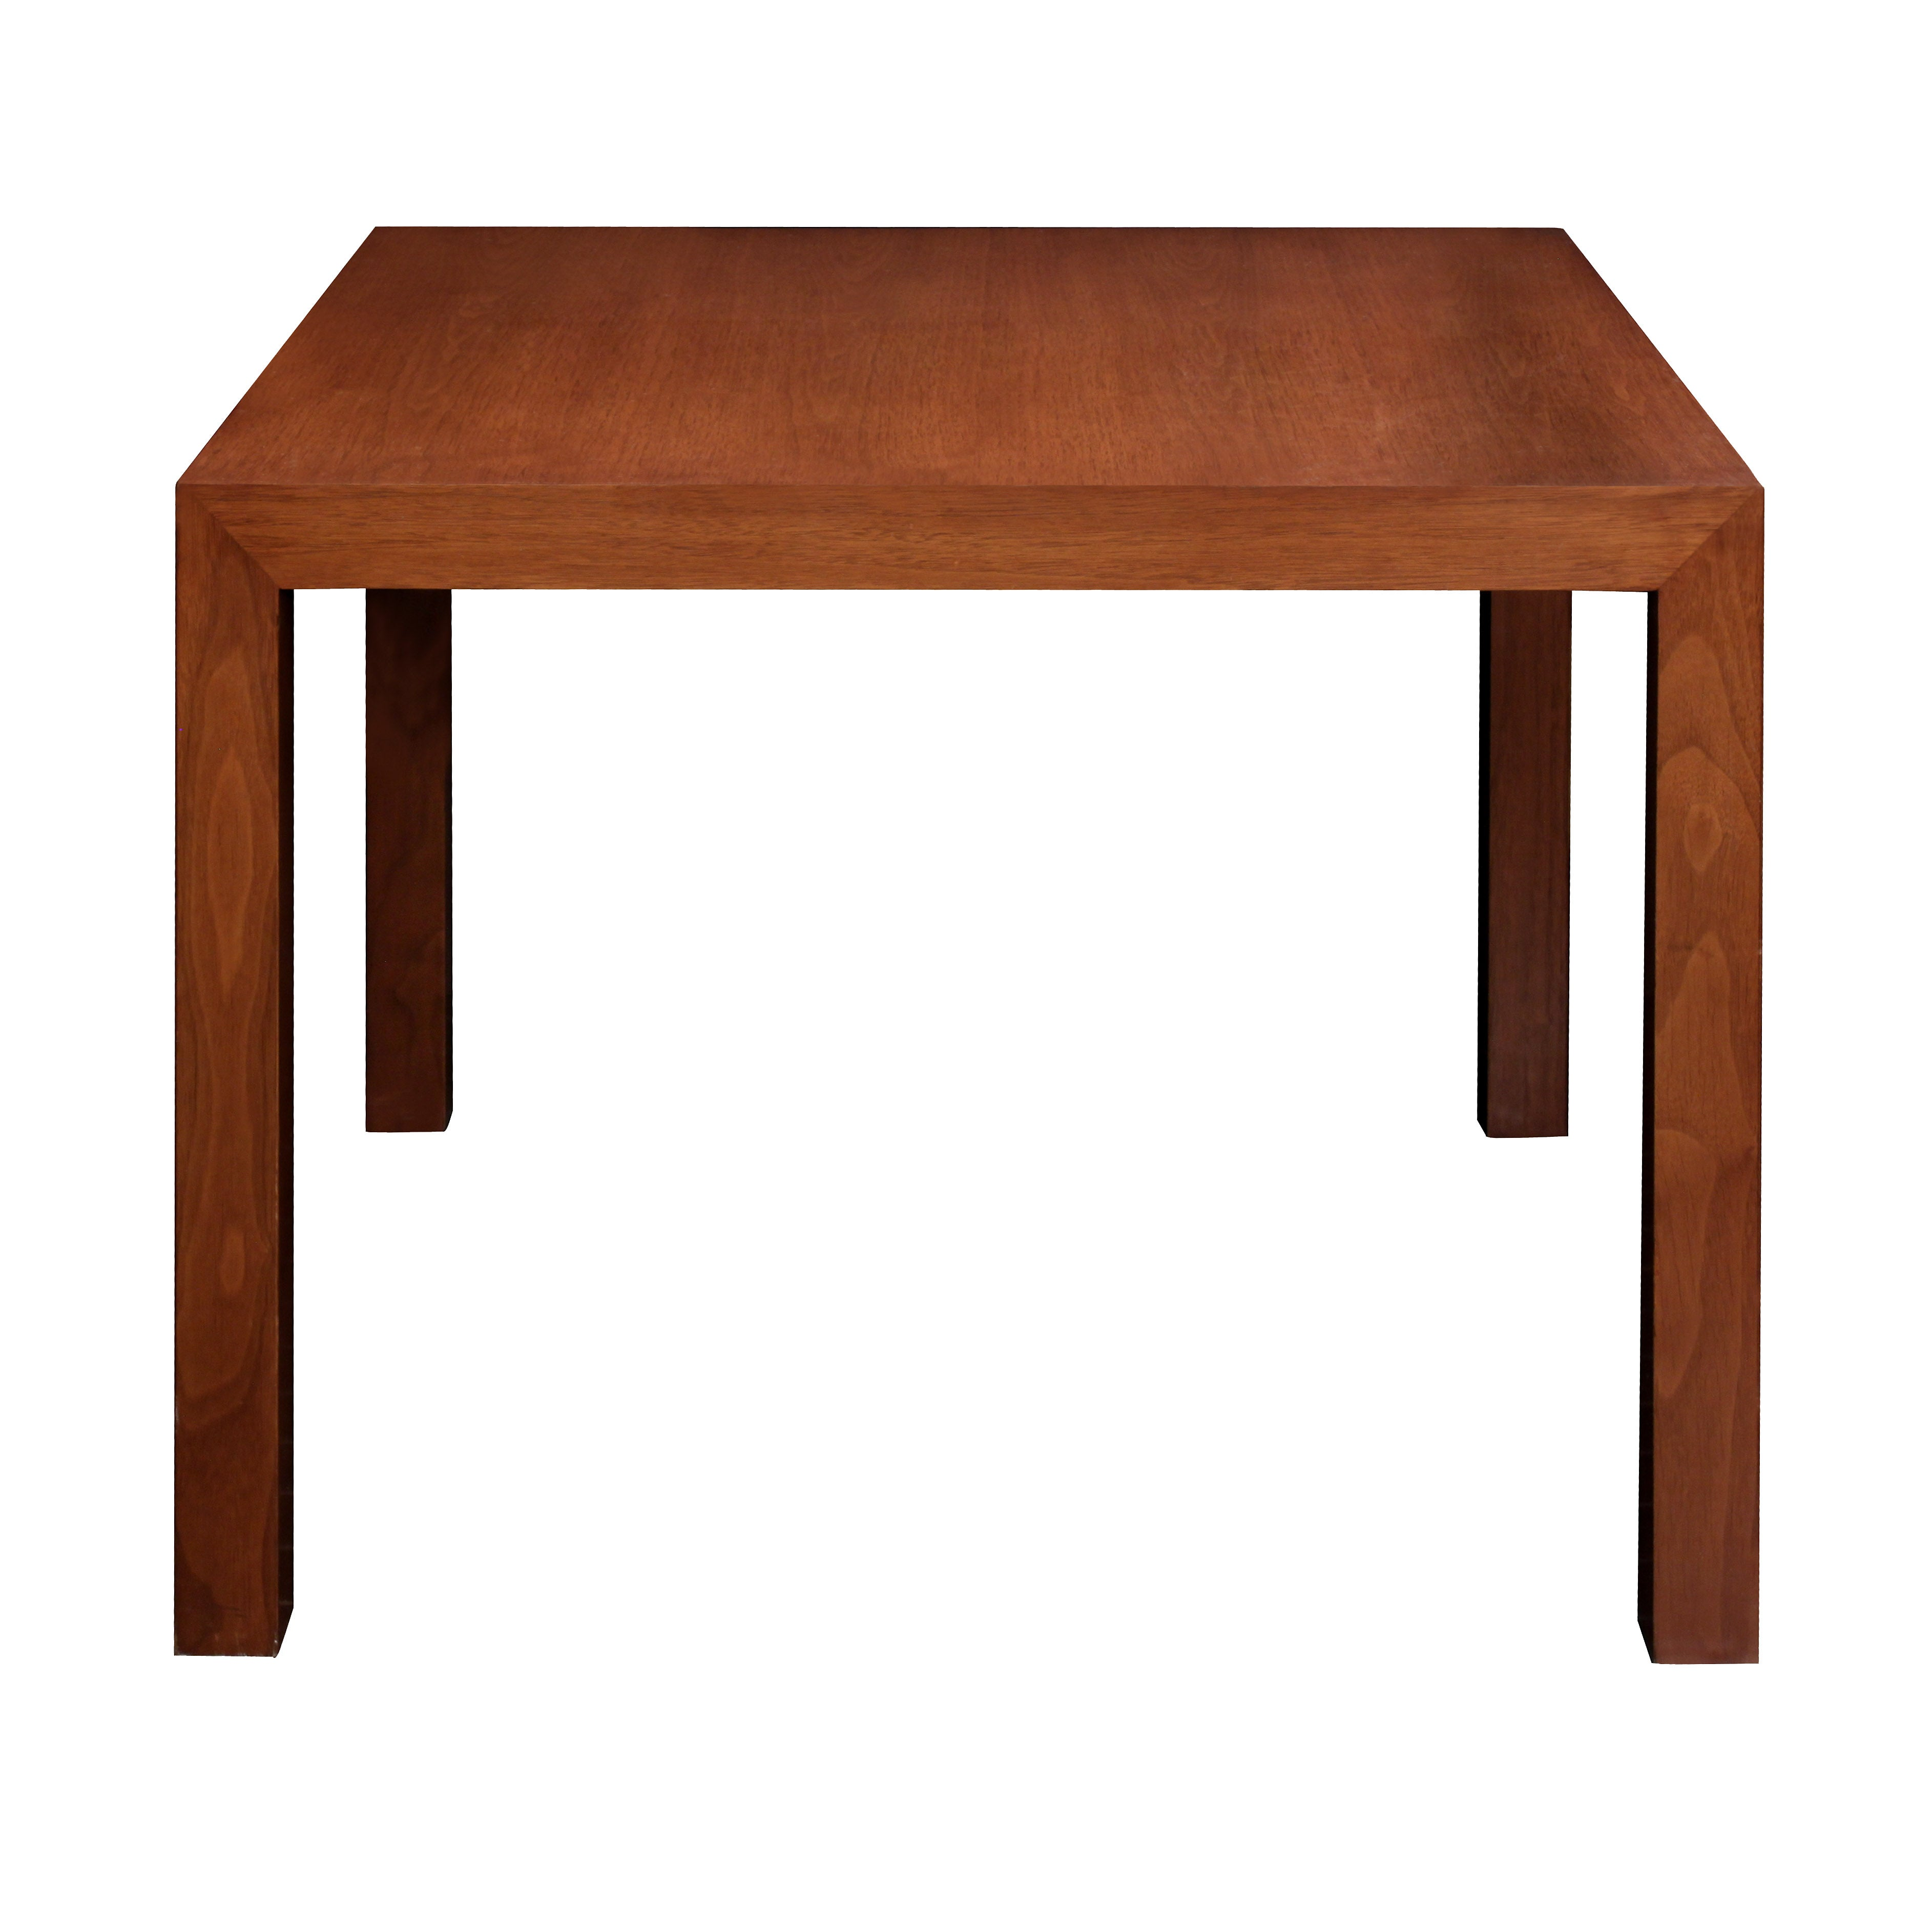 Charmant Parsons Style Side Table By Edward Wormley